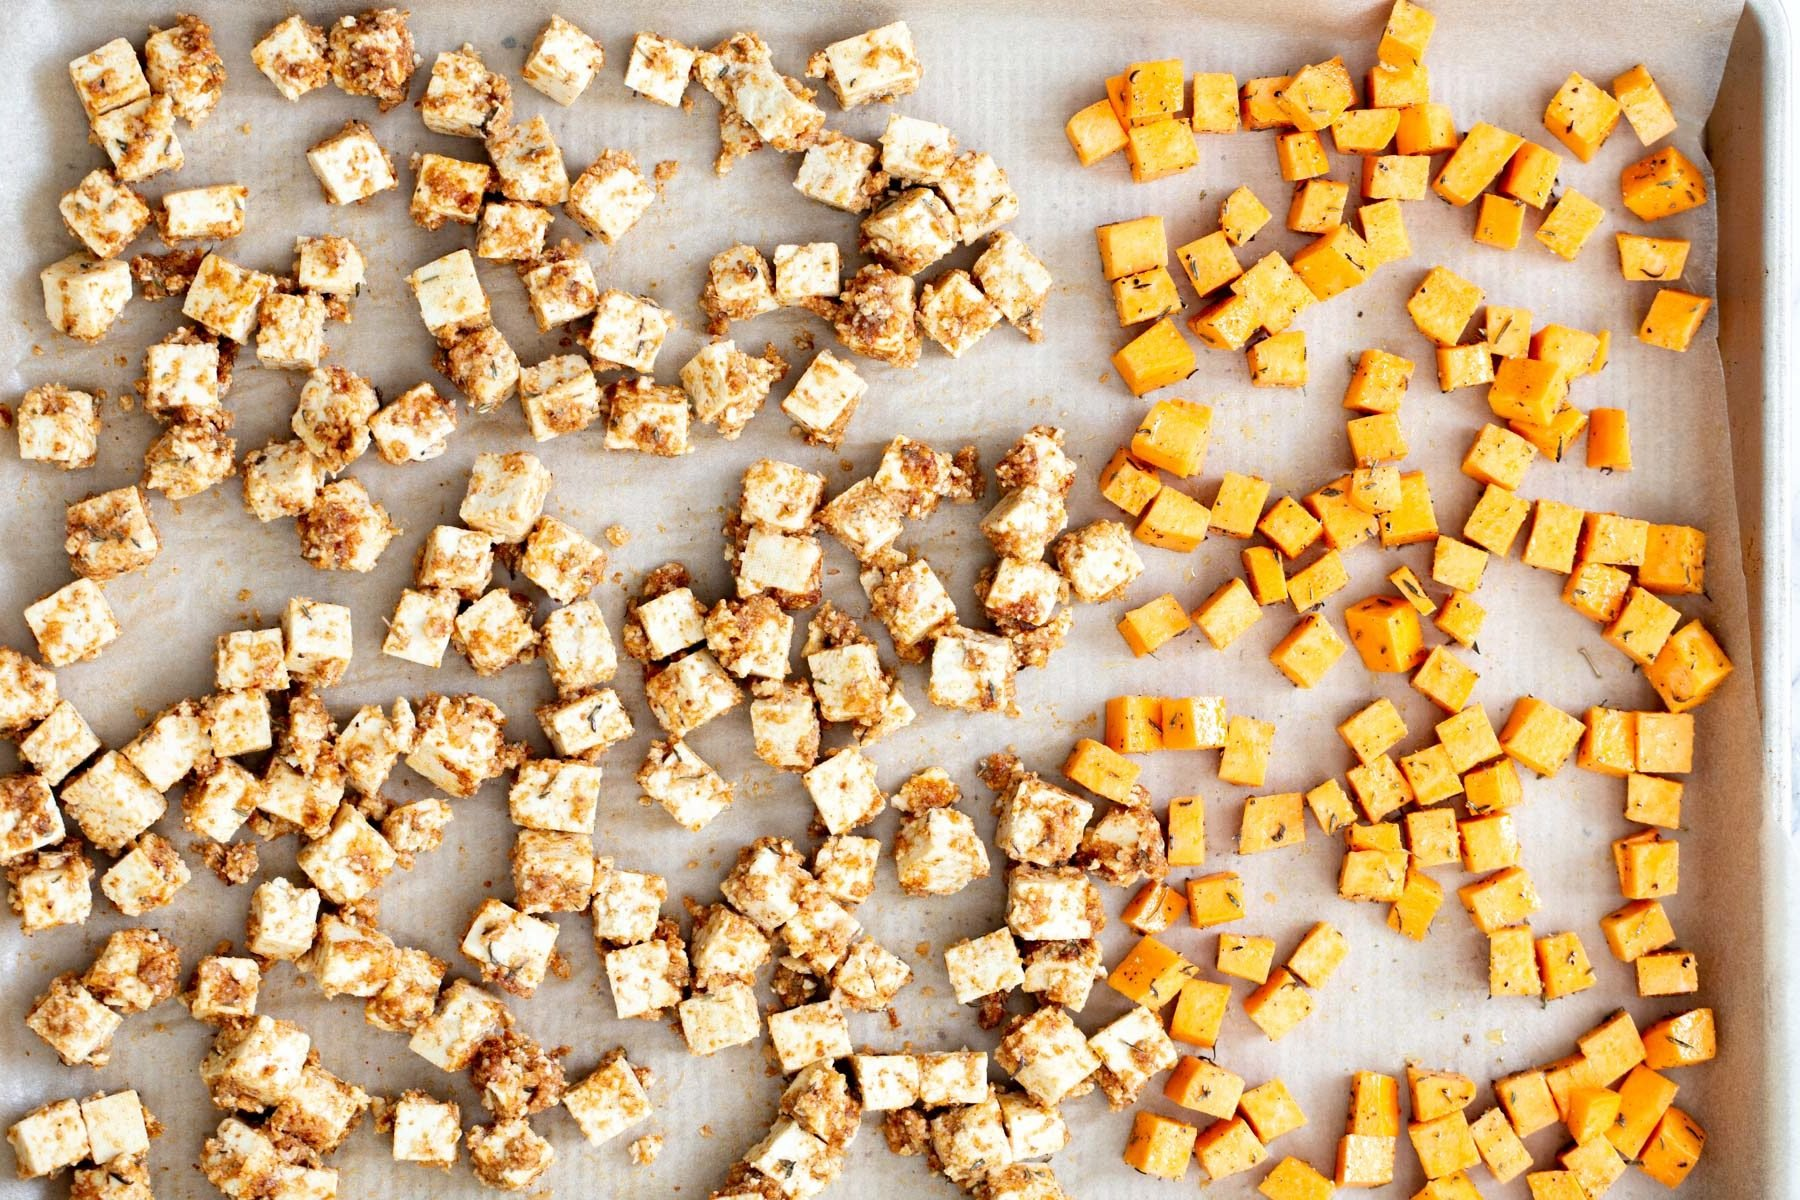 tofu and sweet potato cubes on a baking sheet ready to be baked